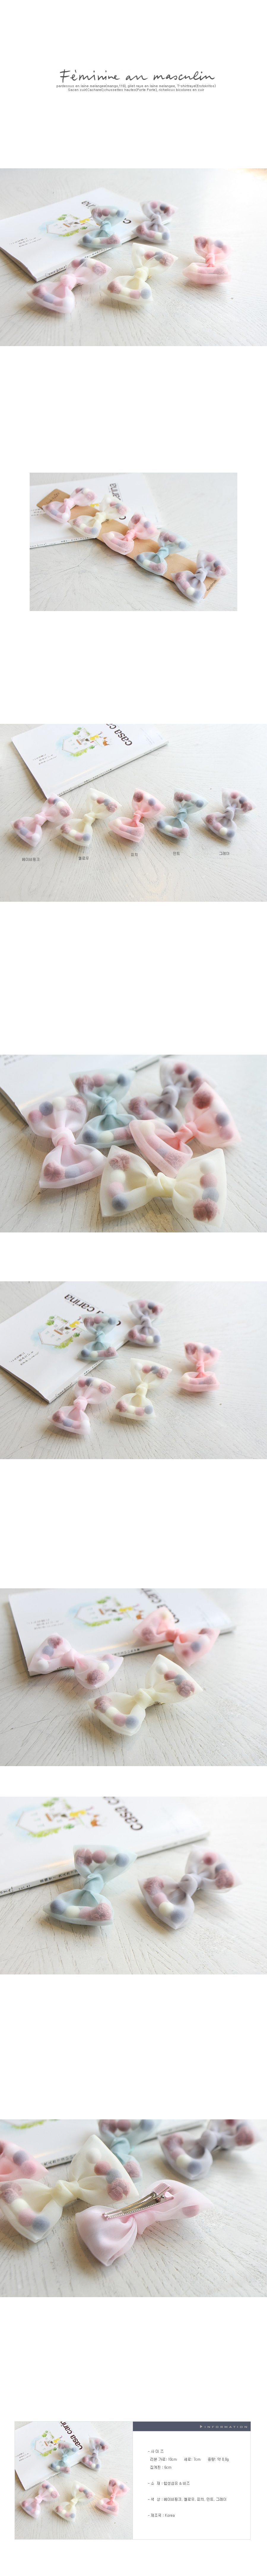 JIREH BOW - Korean Children Fashion - #Kfashion4kids - Lidia Hairpin [set of 5]